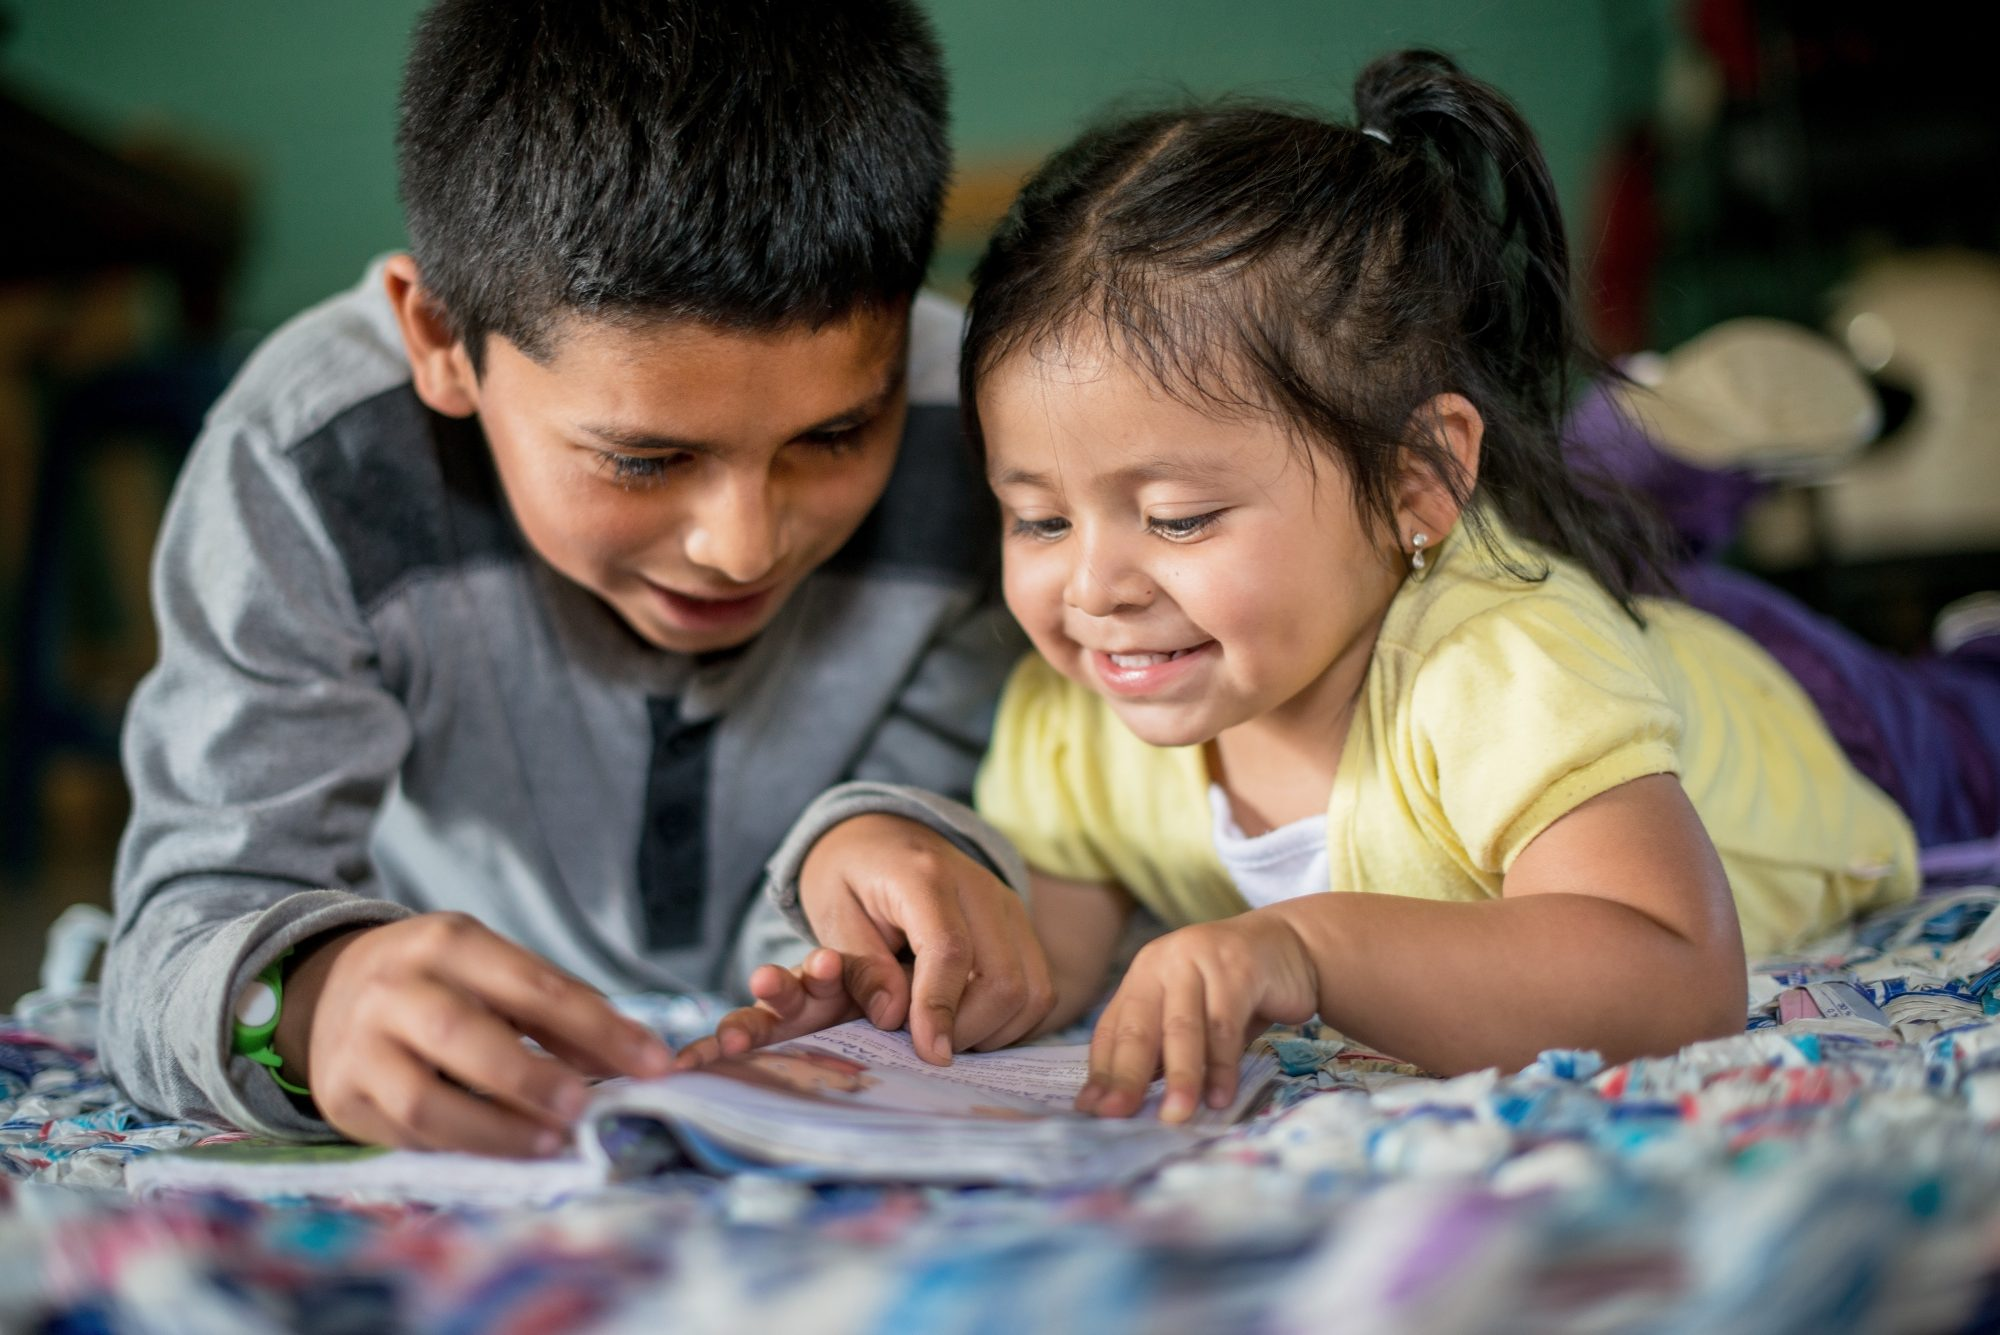 Julio, 11, reads with his 18-month-old sister, Ariana. Just completing the fifth grade, Julio also participates in Save the Children's Literacy Boost program at his school in Guatemala's remote mountainous region of Quiche.